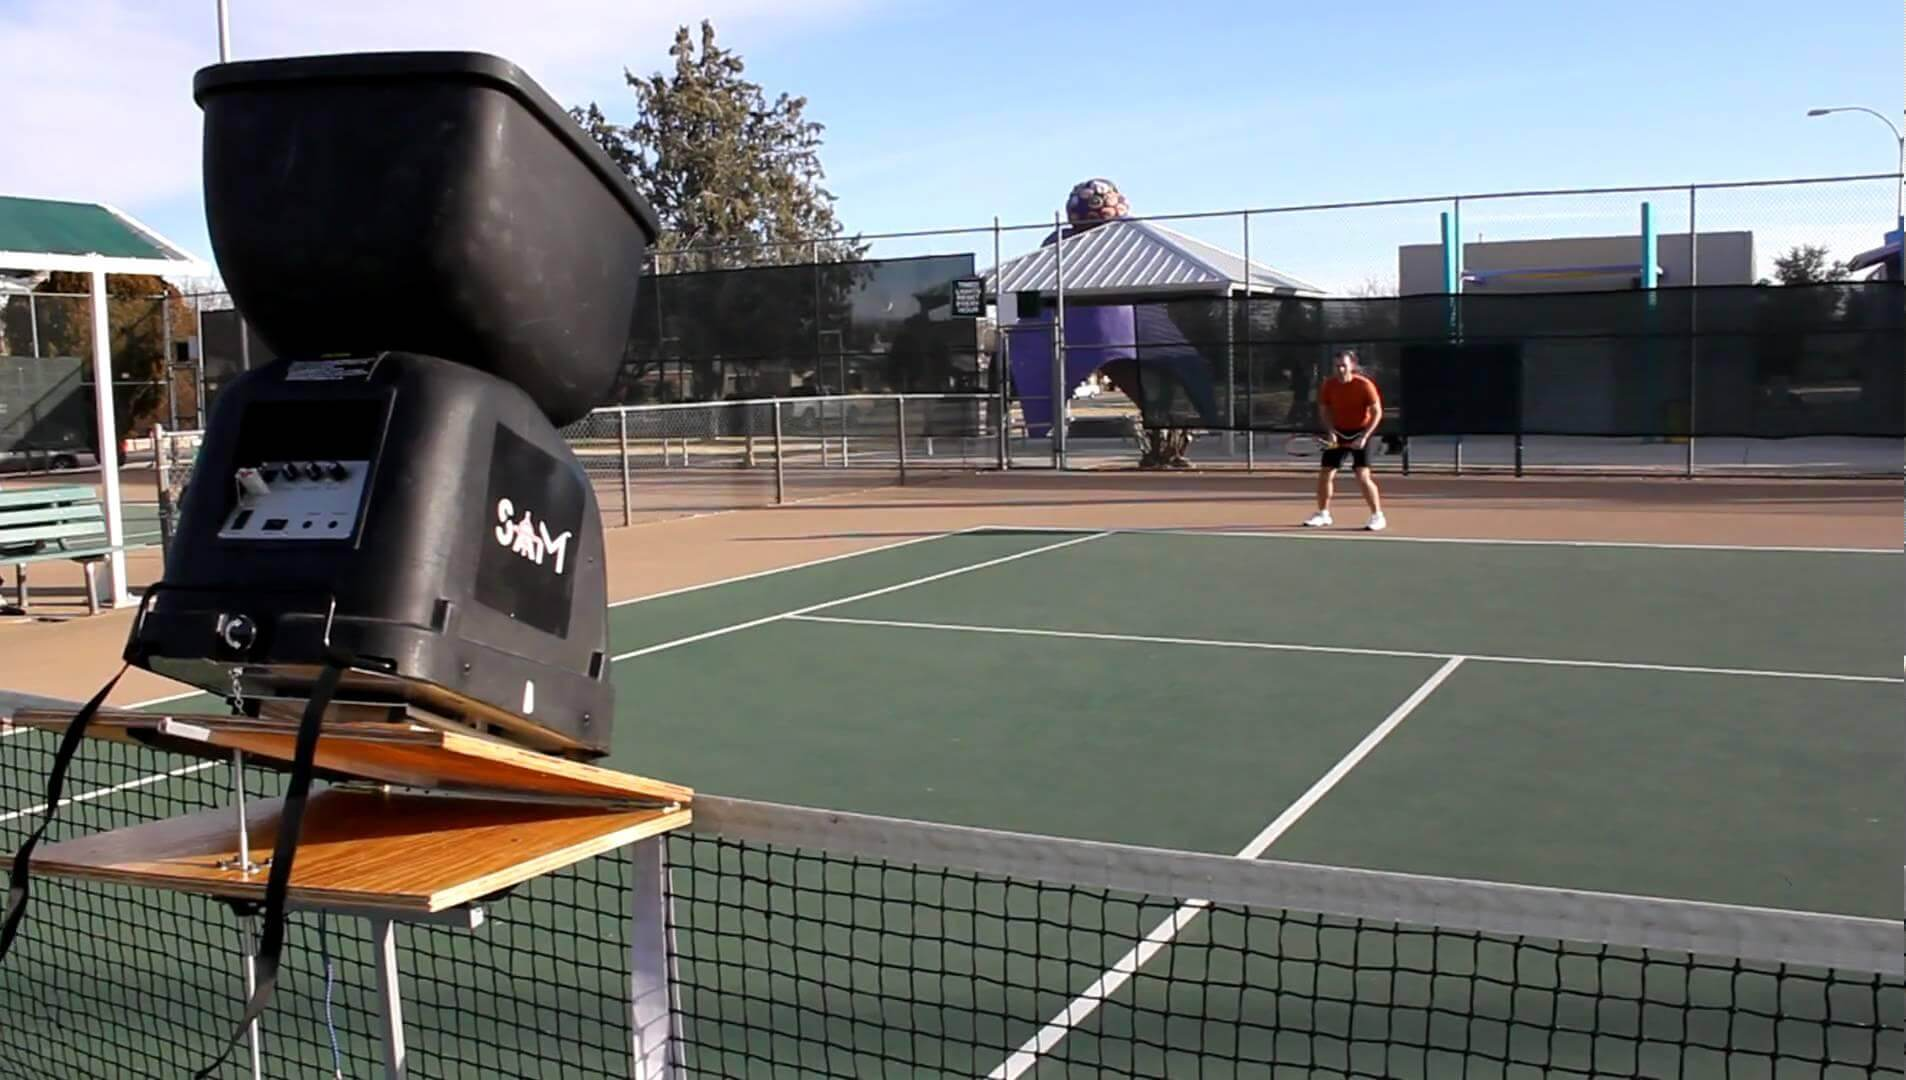 Tips To Consider When Buying A Tennis Ball Machine